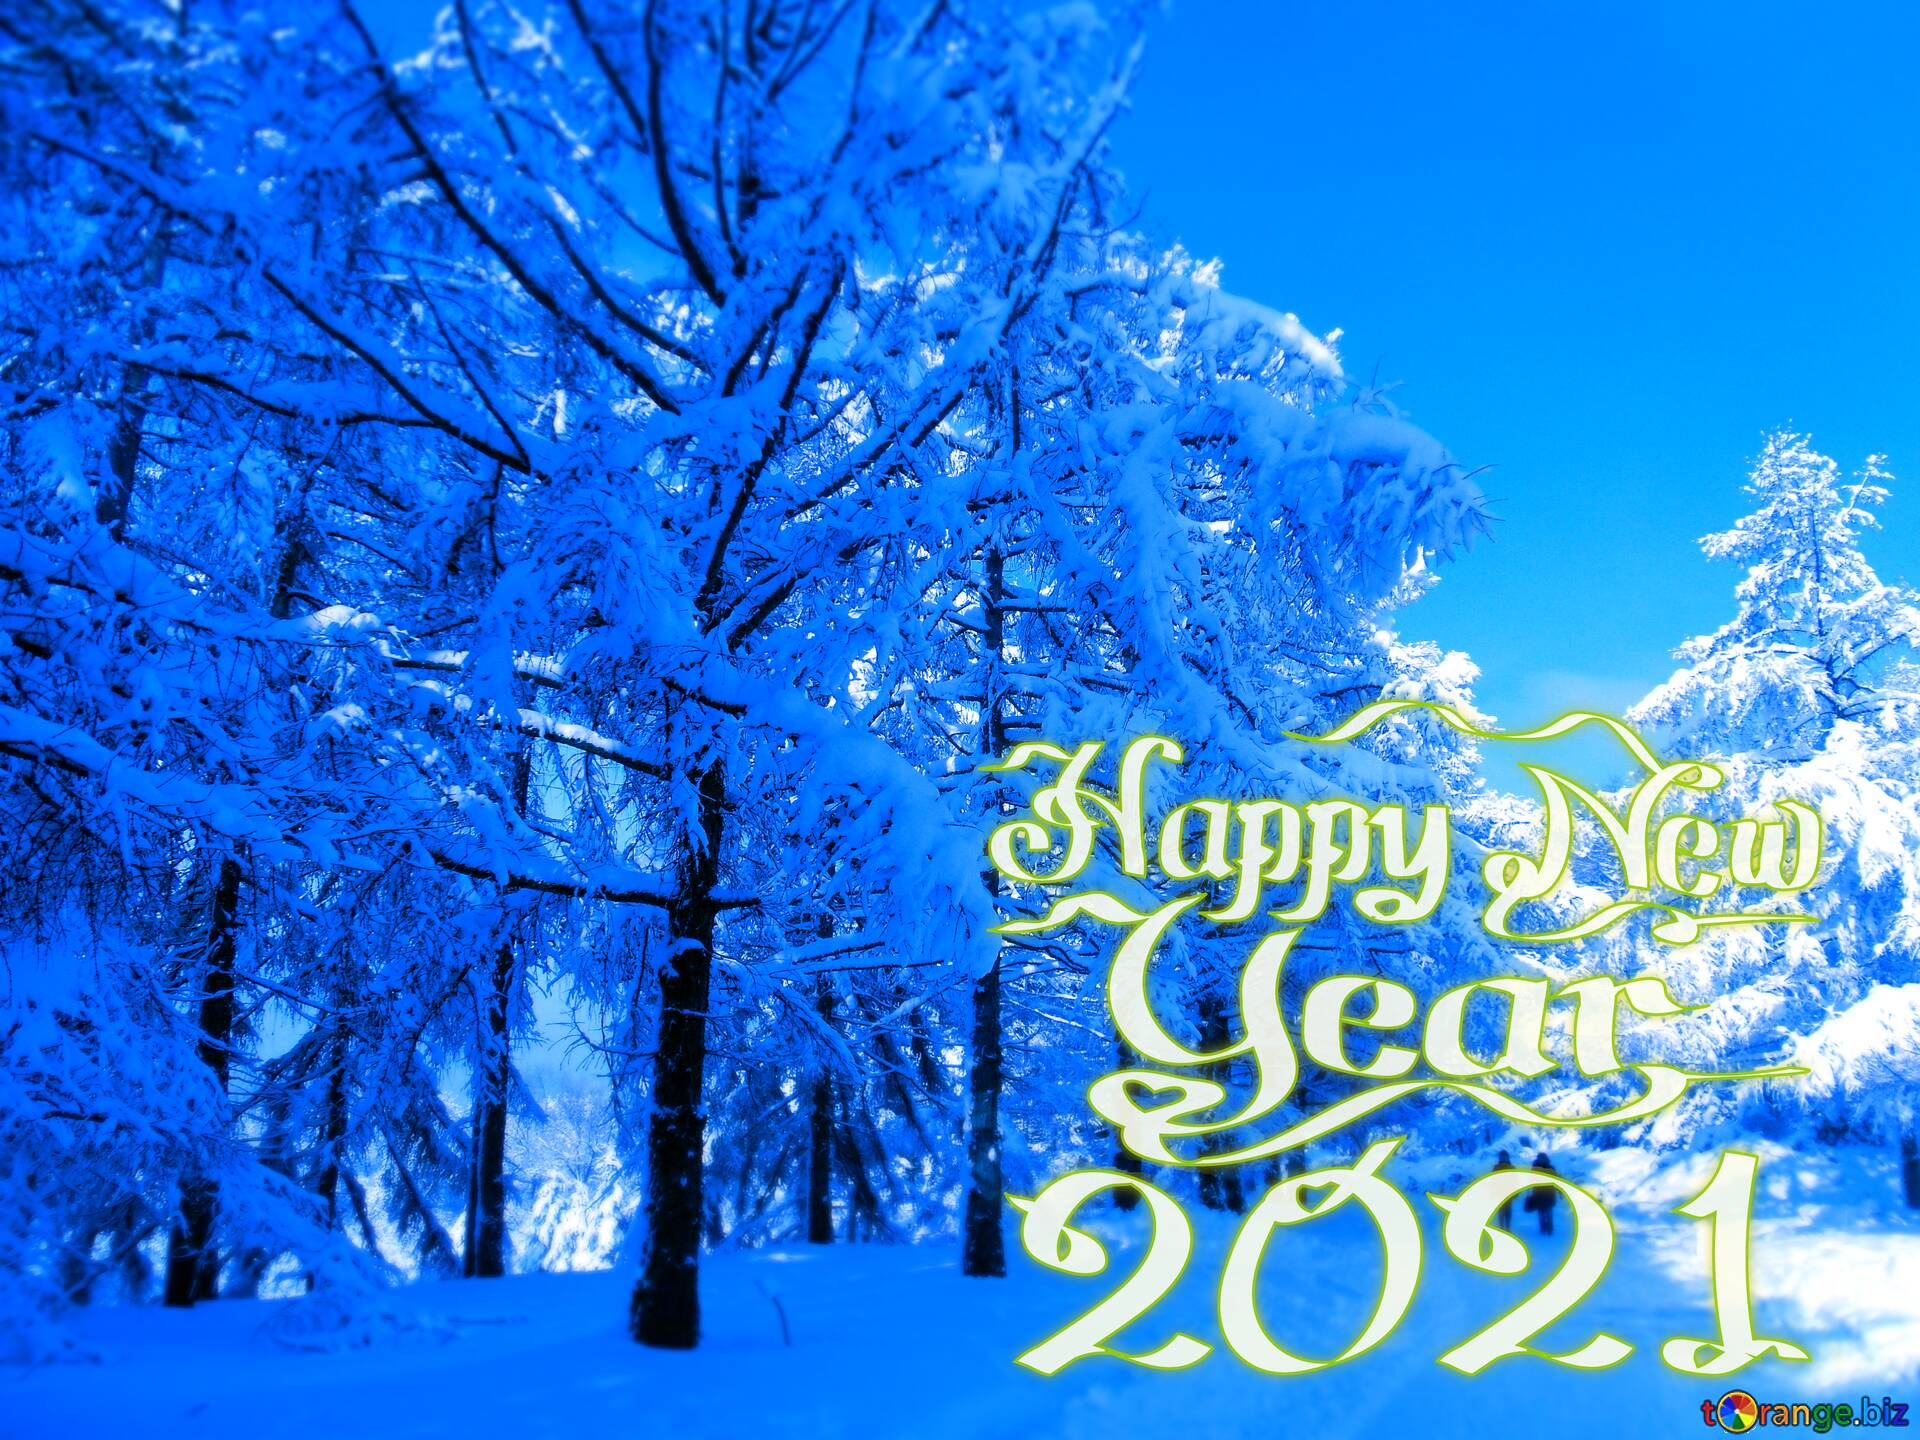 Download picture happy new year 2021 Snow Winter blue forest 1920x1440